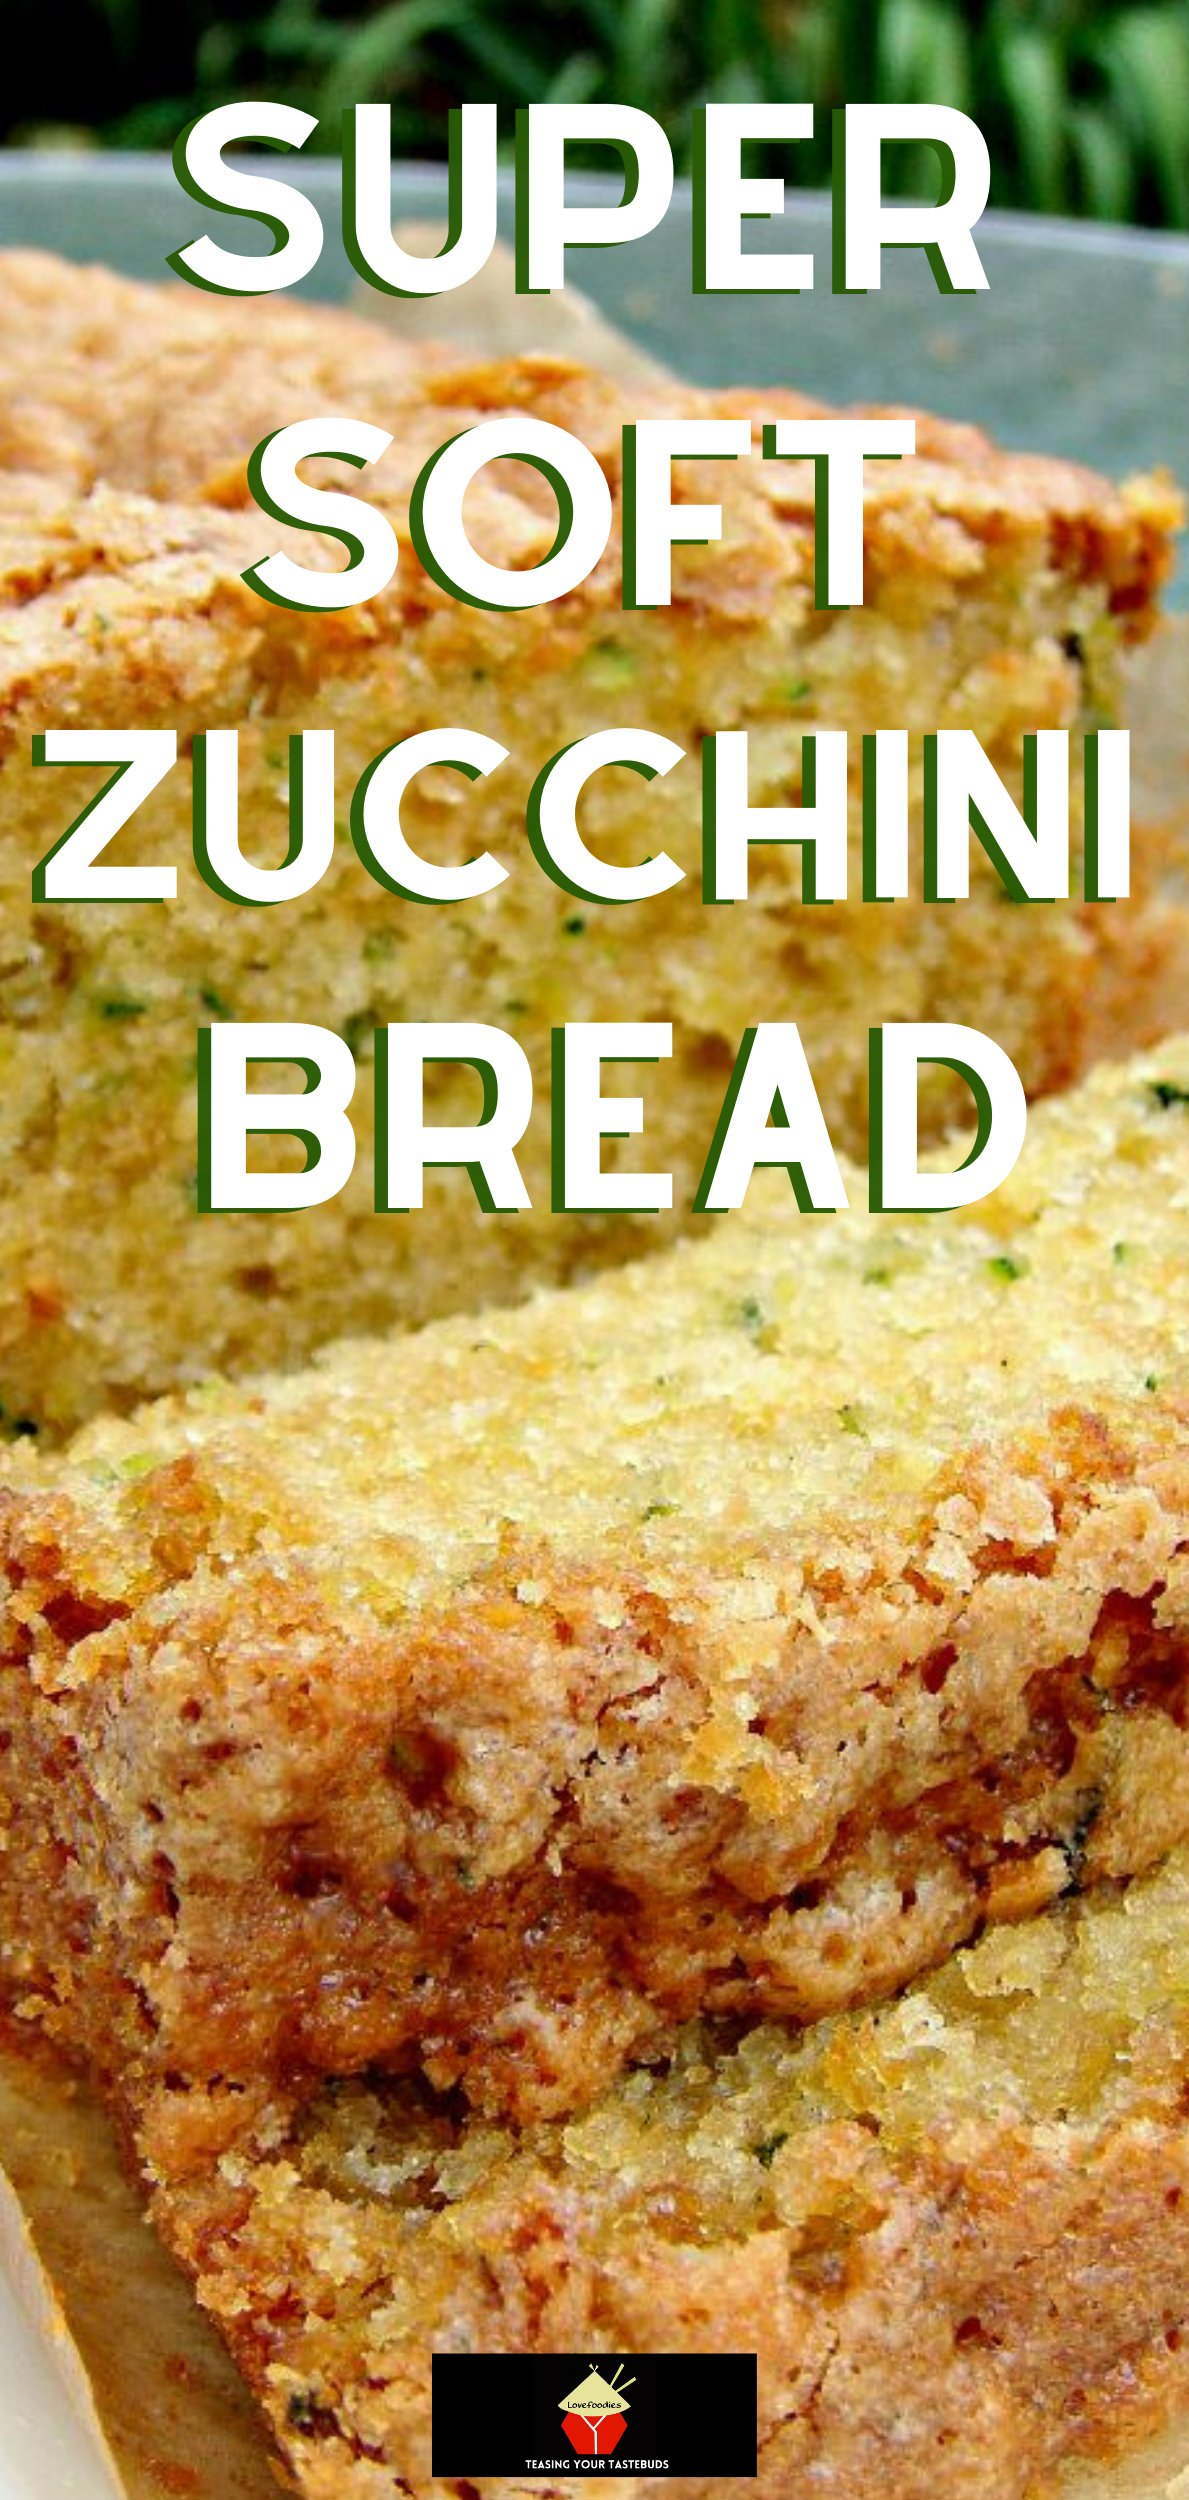 Super Moist Zucchini Bread. A wonderfully soft, no yeast loaf cake perfect with a cup of tea! and a great way to hide vegetables in cake!